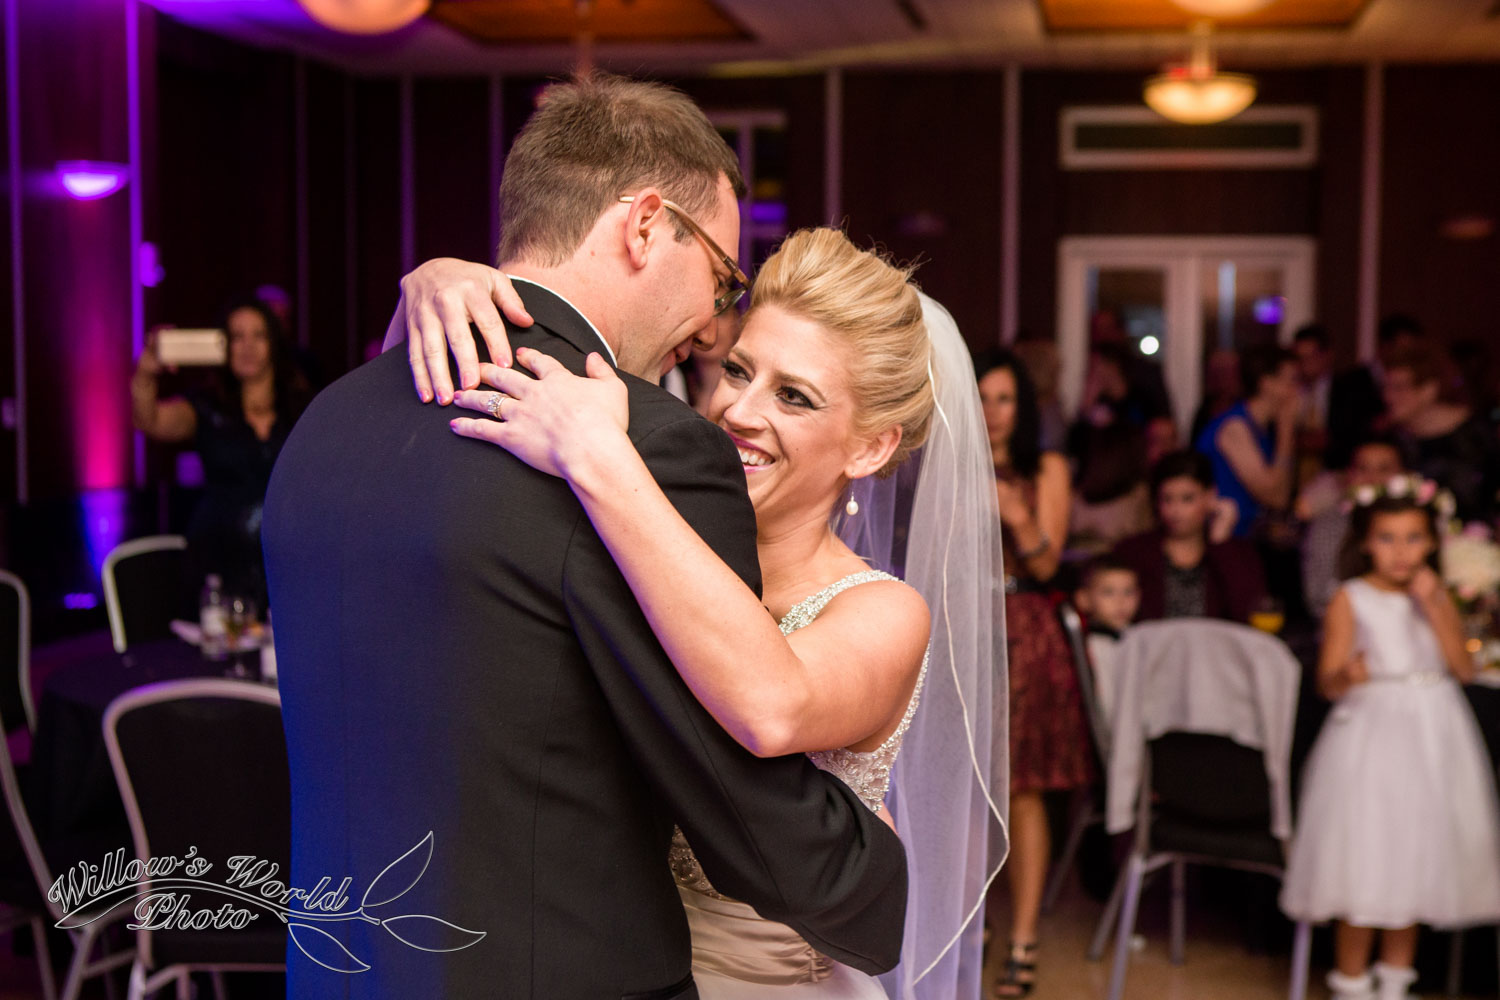 New Orleans Wedding Photos Messinas at the Terminal Willows World Photo-11.jpg